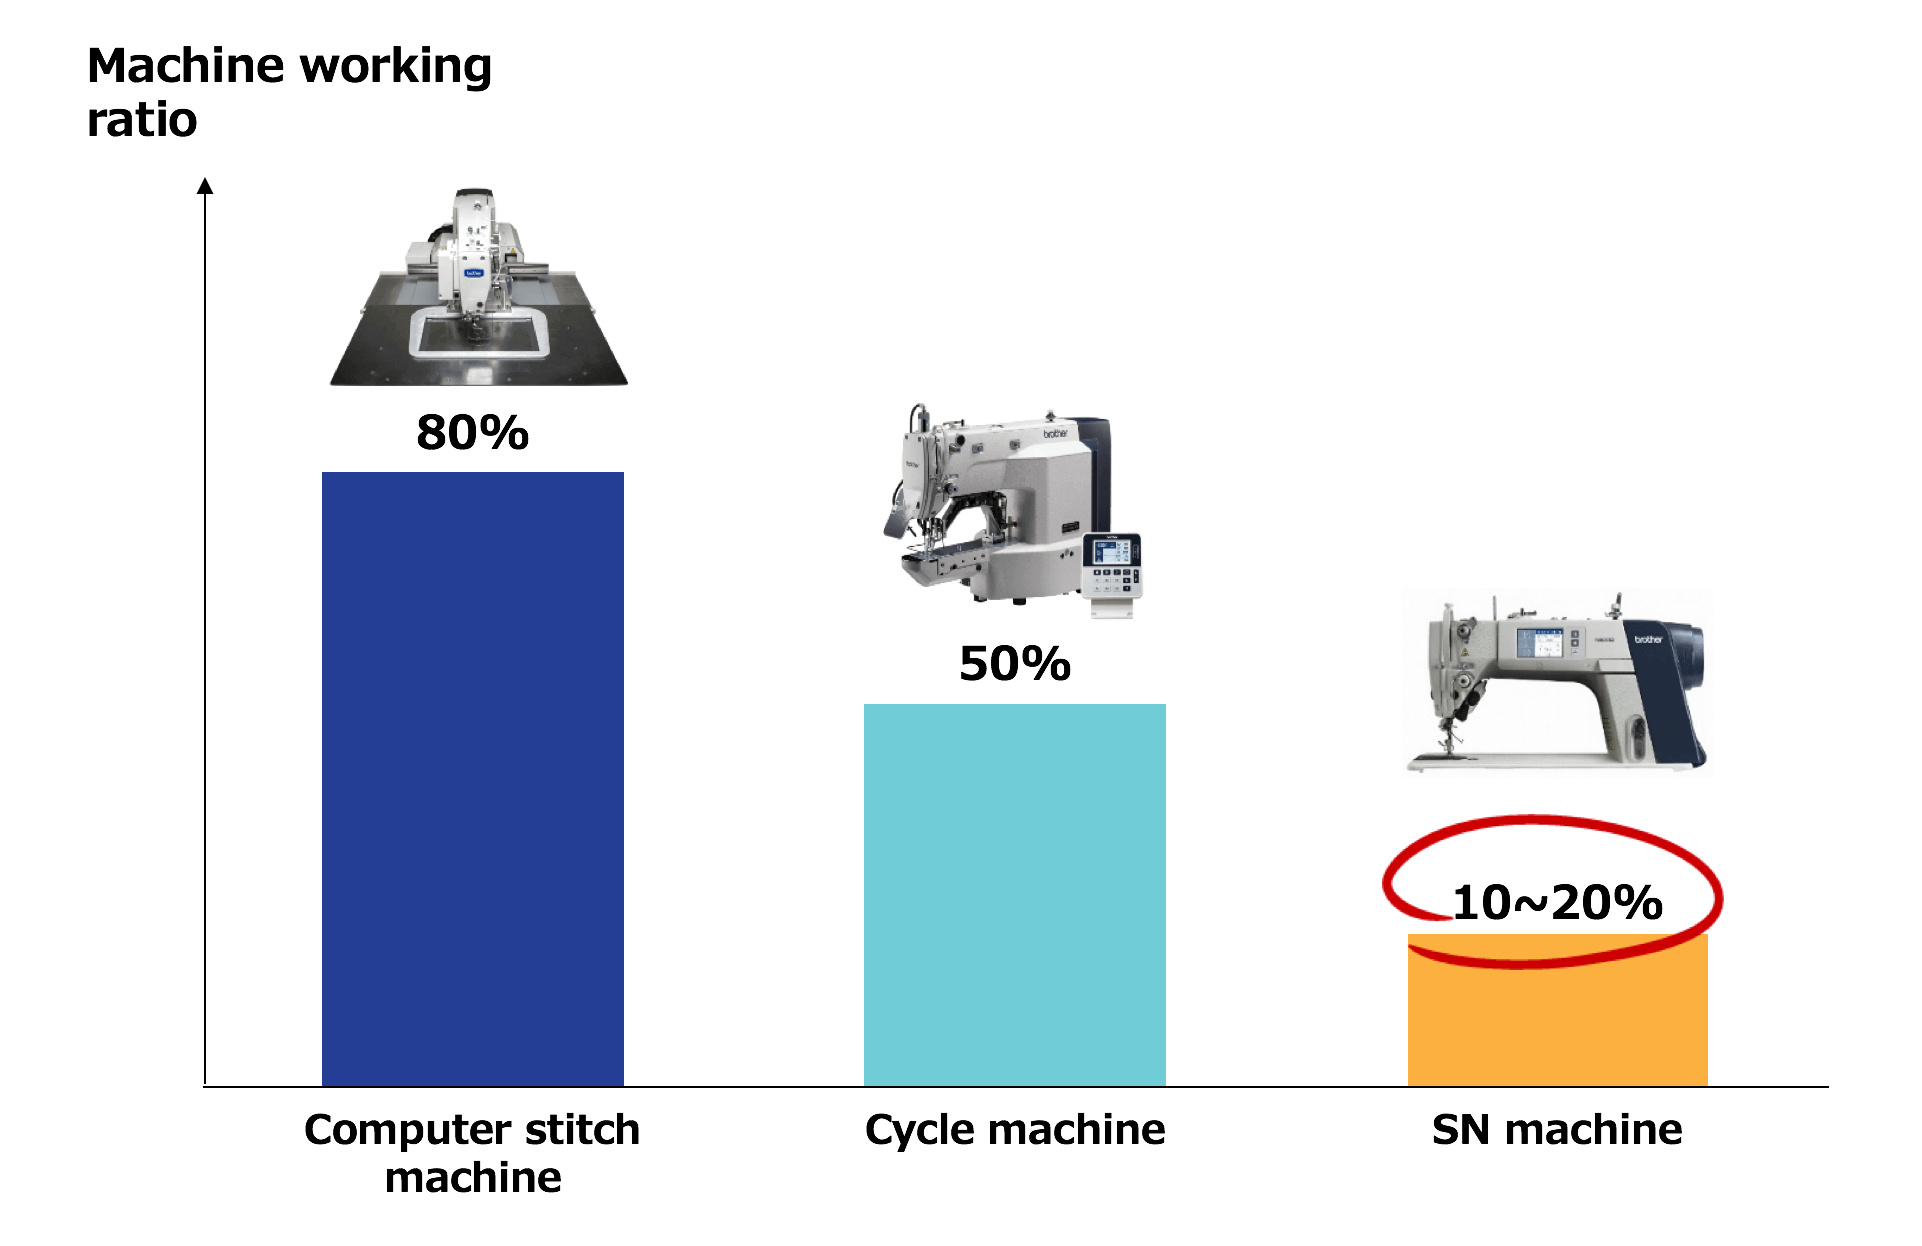 However, SN machines are also the most inefficient! When looking at total working time, SN machines only spend 10-20% of total time on sewing.